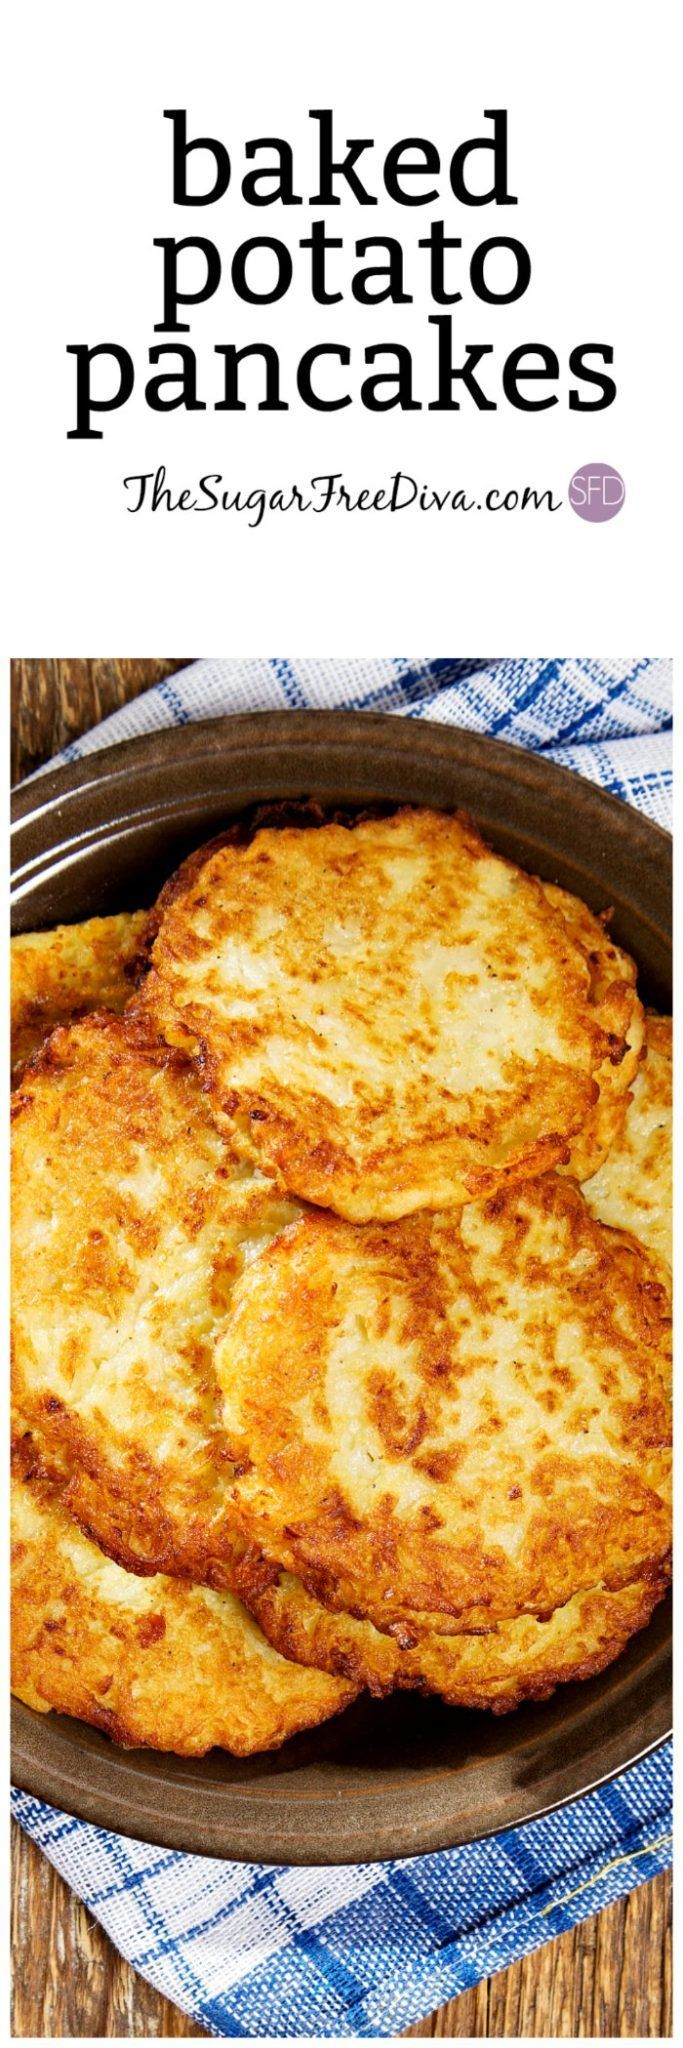 How to Make Baked Potato Pancakes #latka #chanukka #hanukkah #potatoes #Pancake